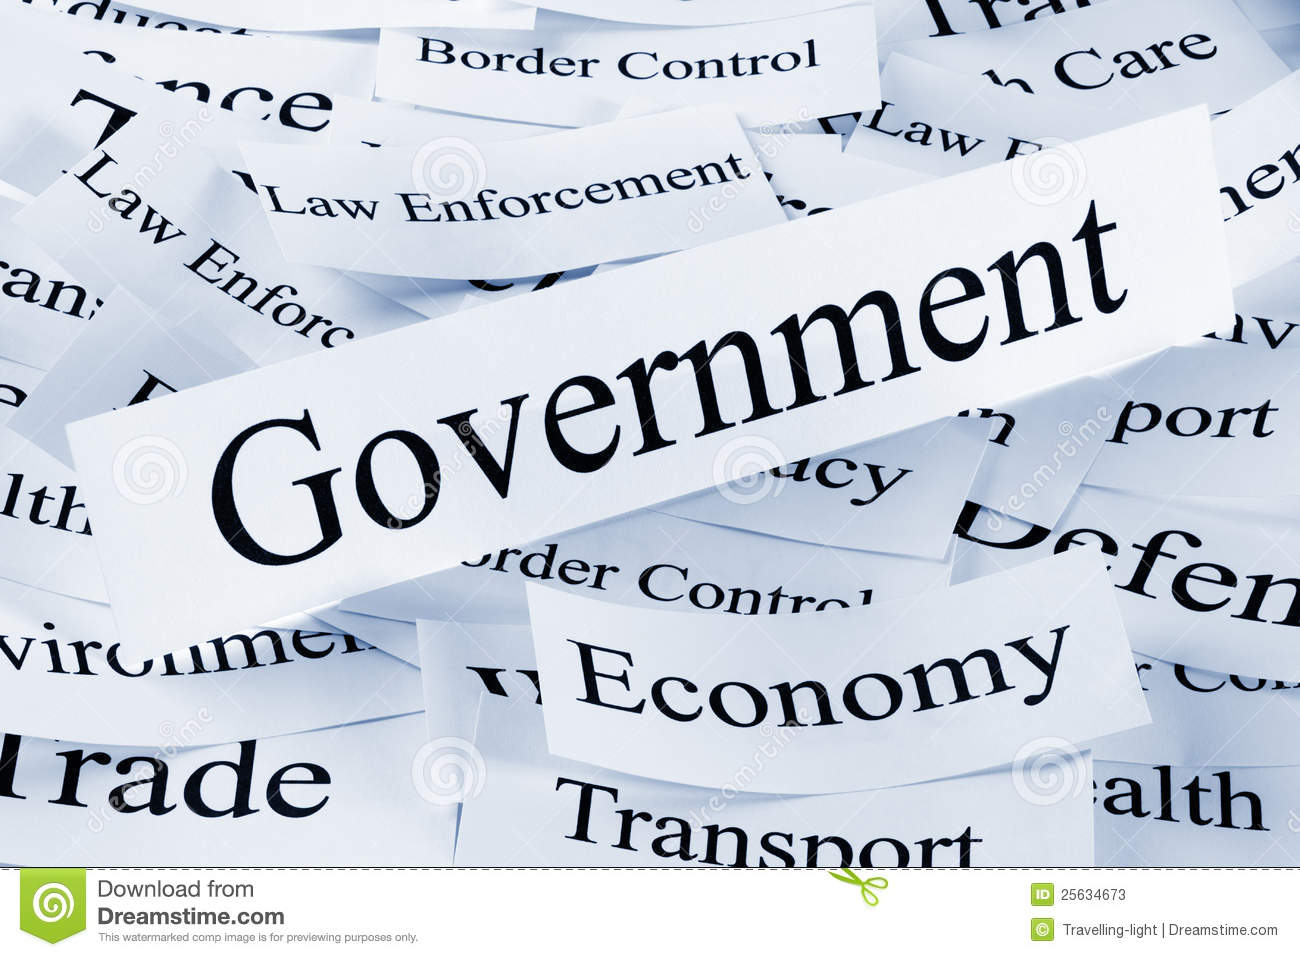 the governments role in economic efficiency Start studying chapter 15 - government's role in economic efficiency learn vocabulary, terms, and more with flashcards, games, and other study tools.